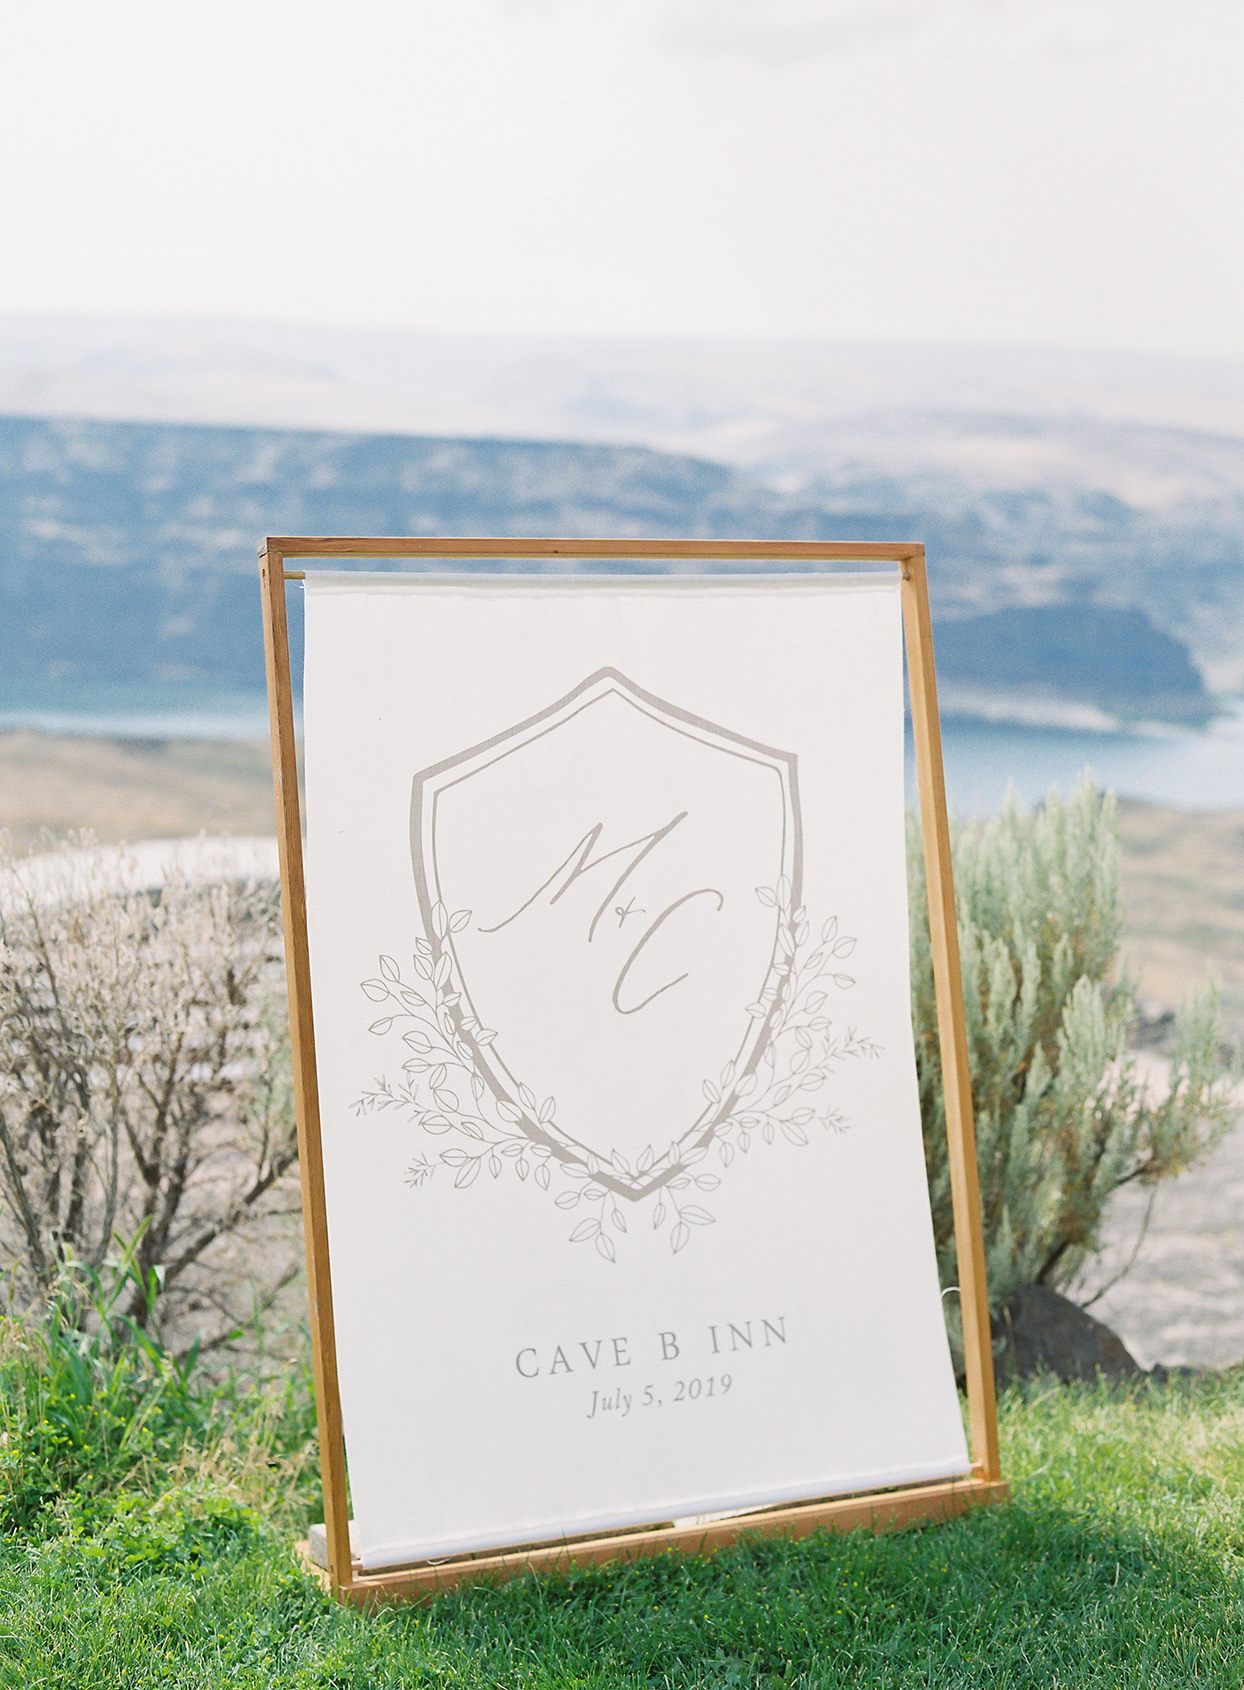 micaela curtis wedding sign cave b inn location